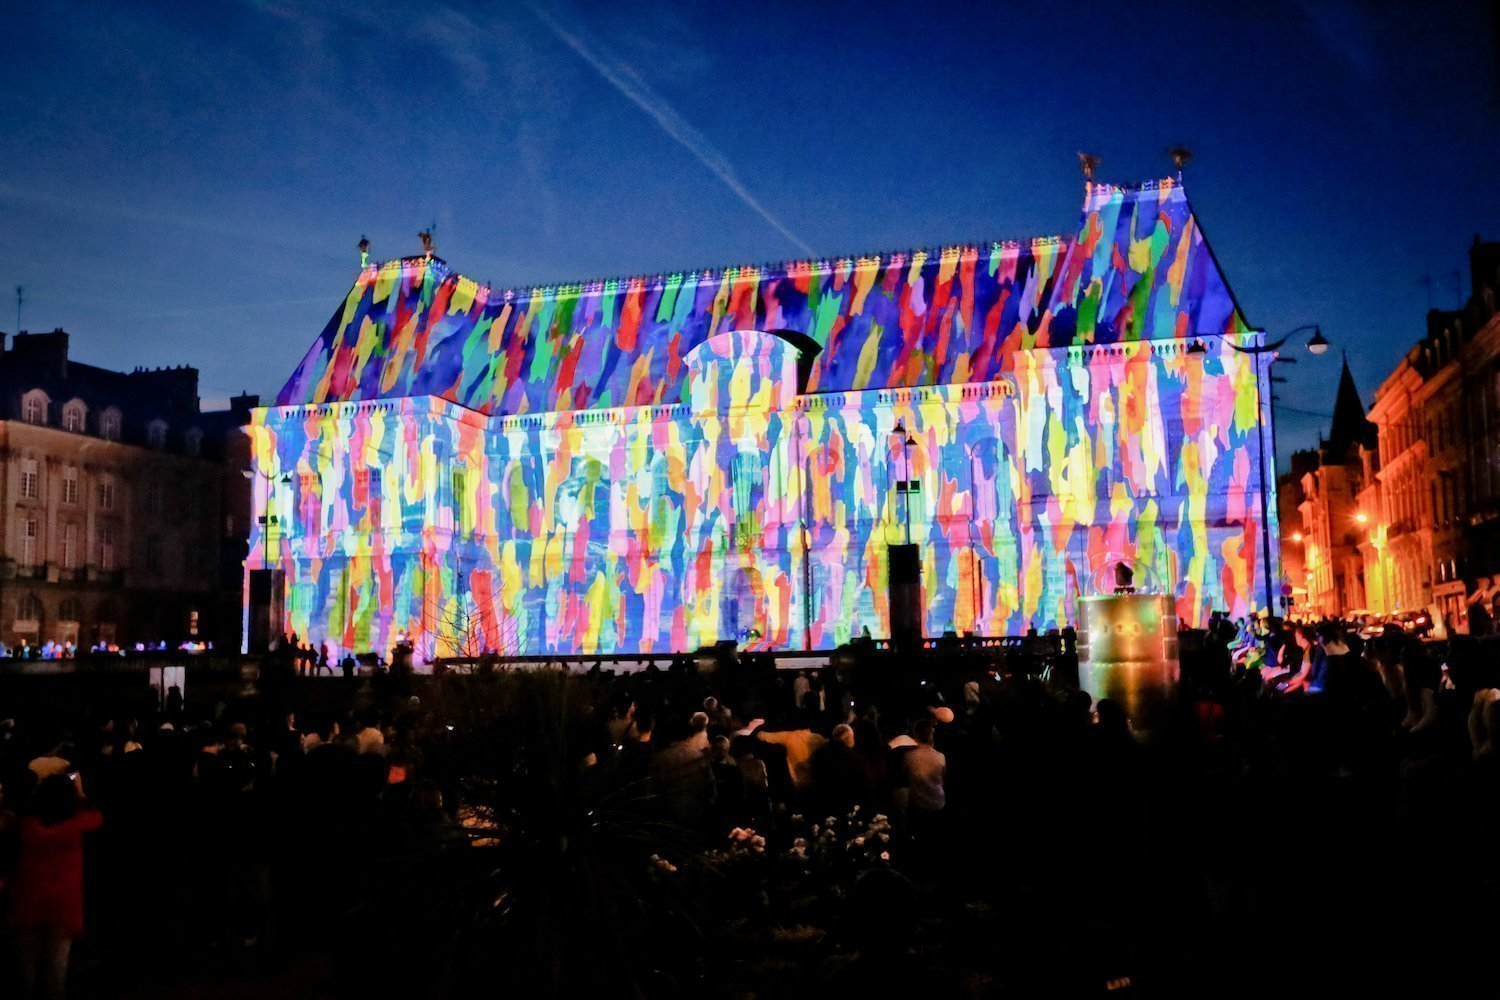 The projections created by Spectaculaires